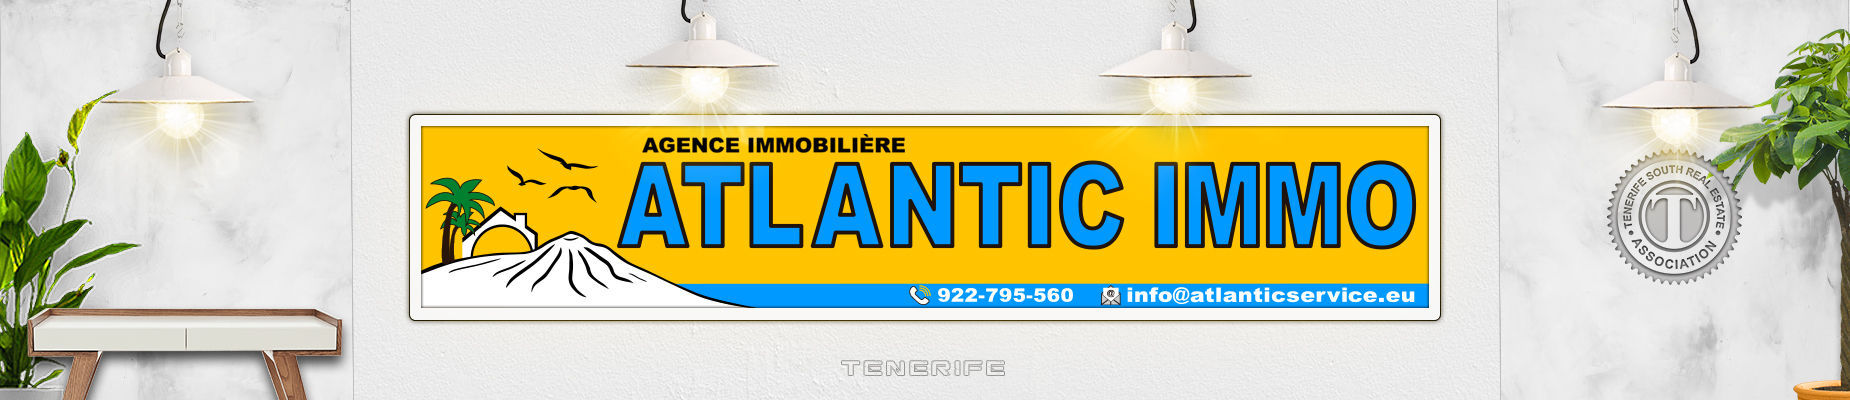 Atlantic Immo agence immobiliere 2019 tenerife